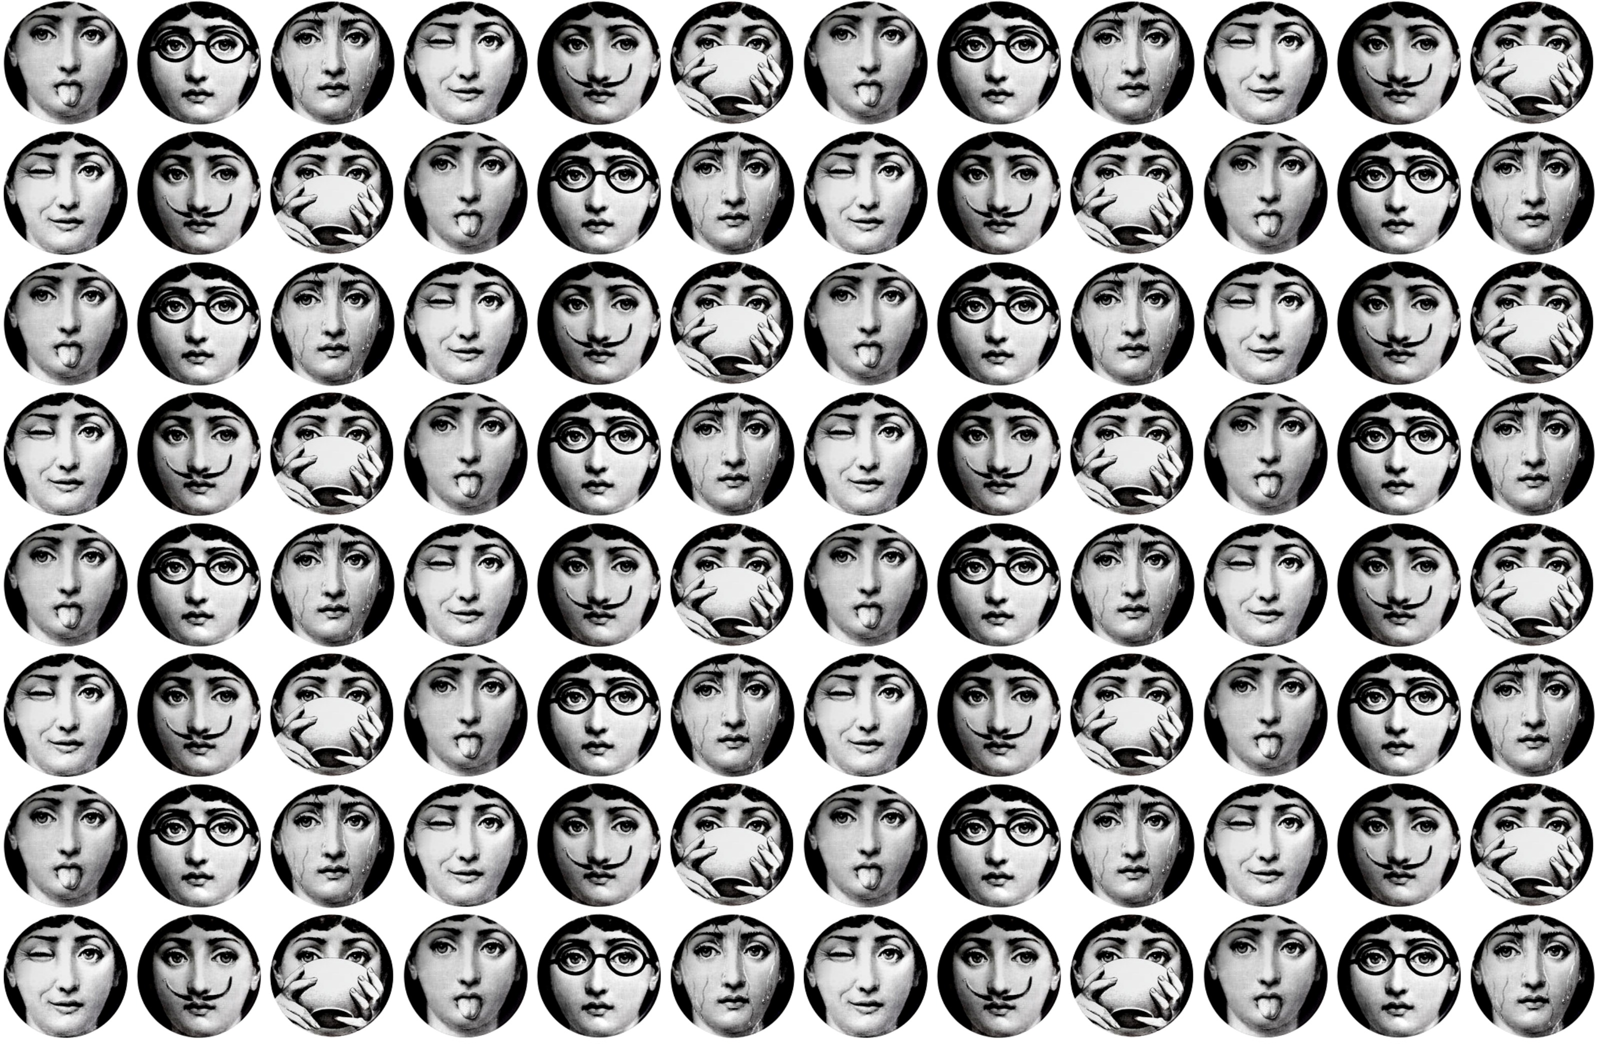 Fornasetti Wallpaper Faces